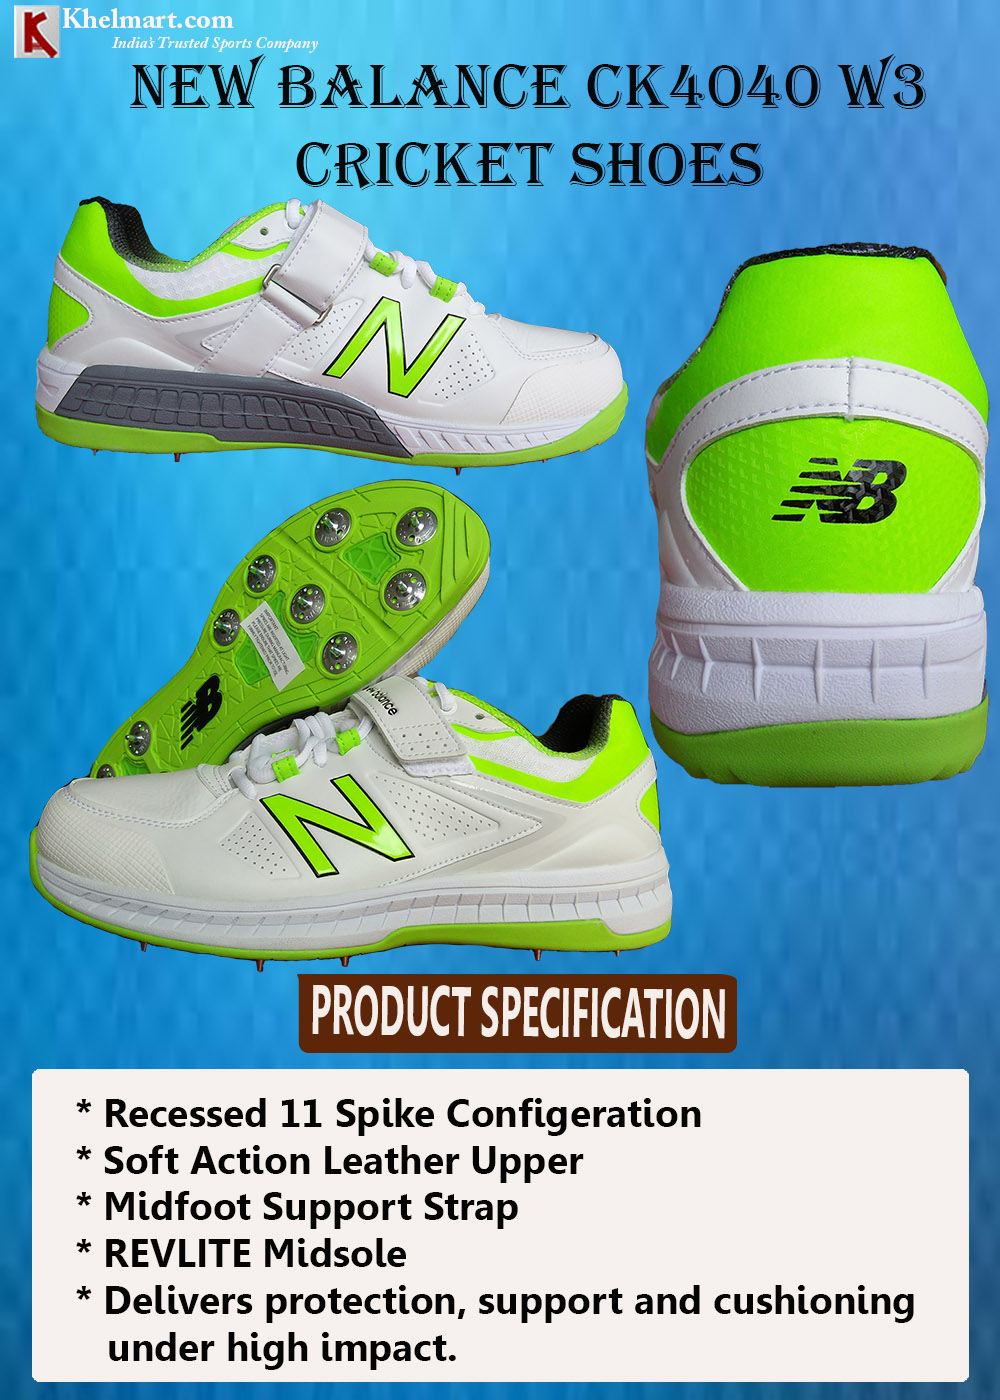 New Balance CK4040 W3 Cricket Shoes_4